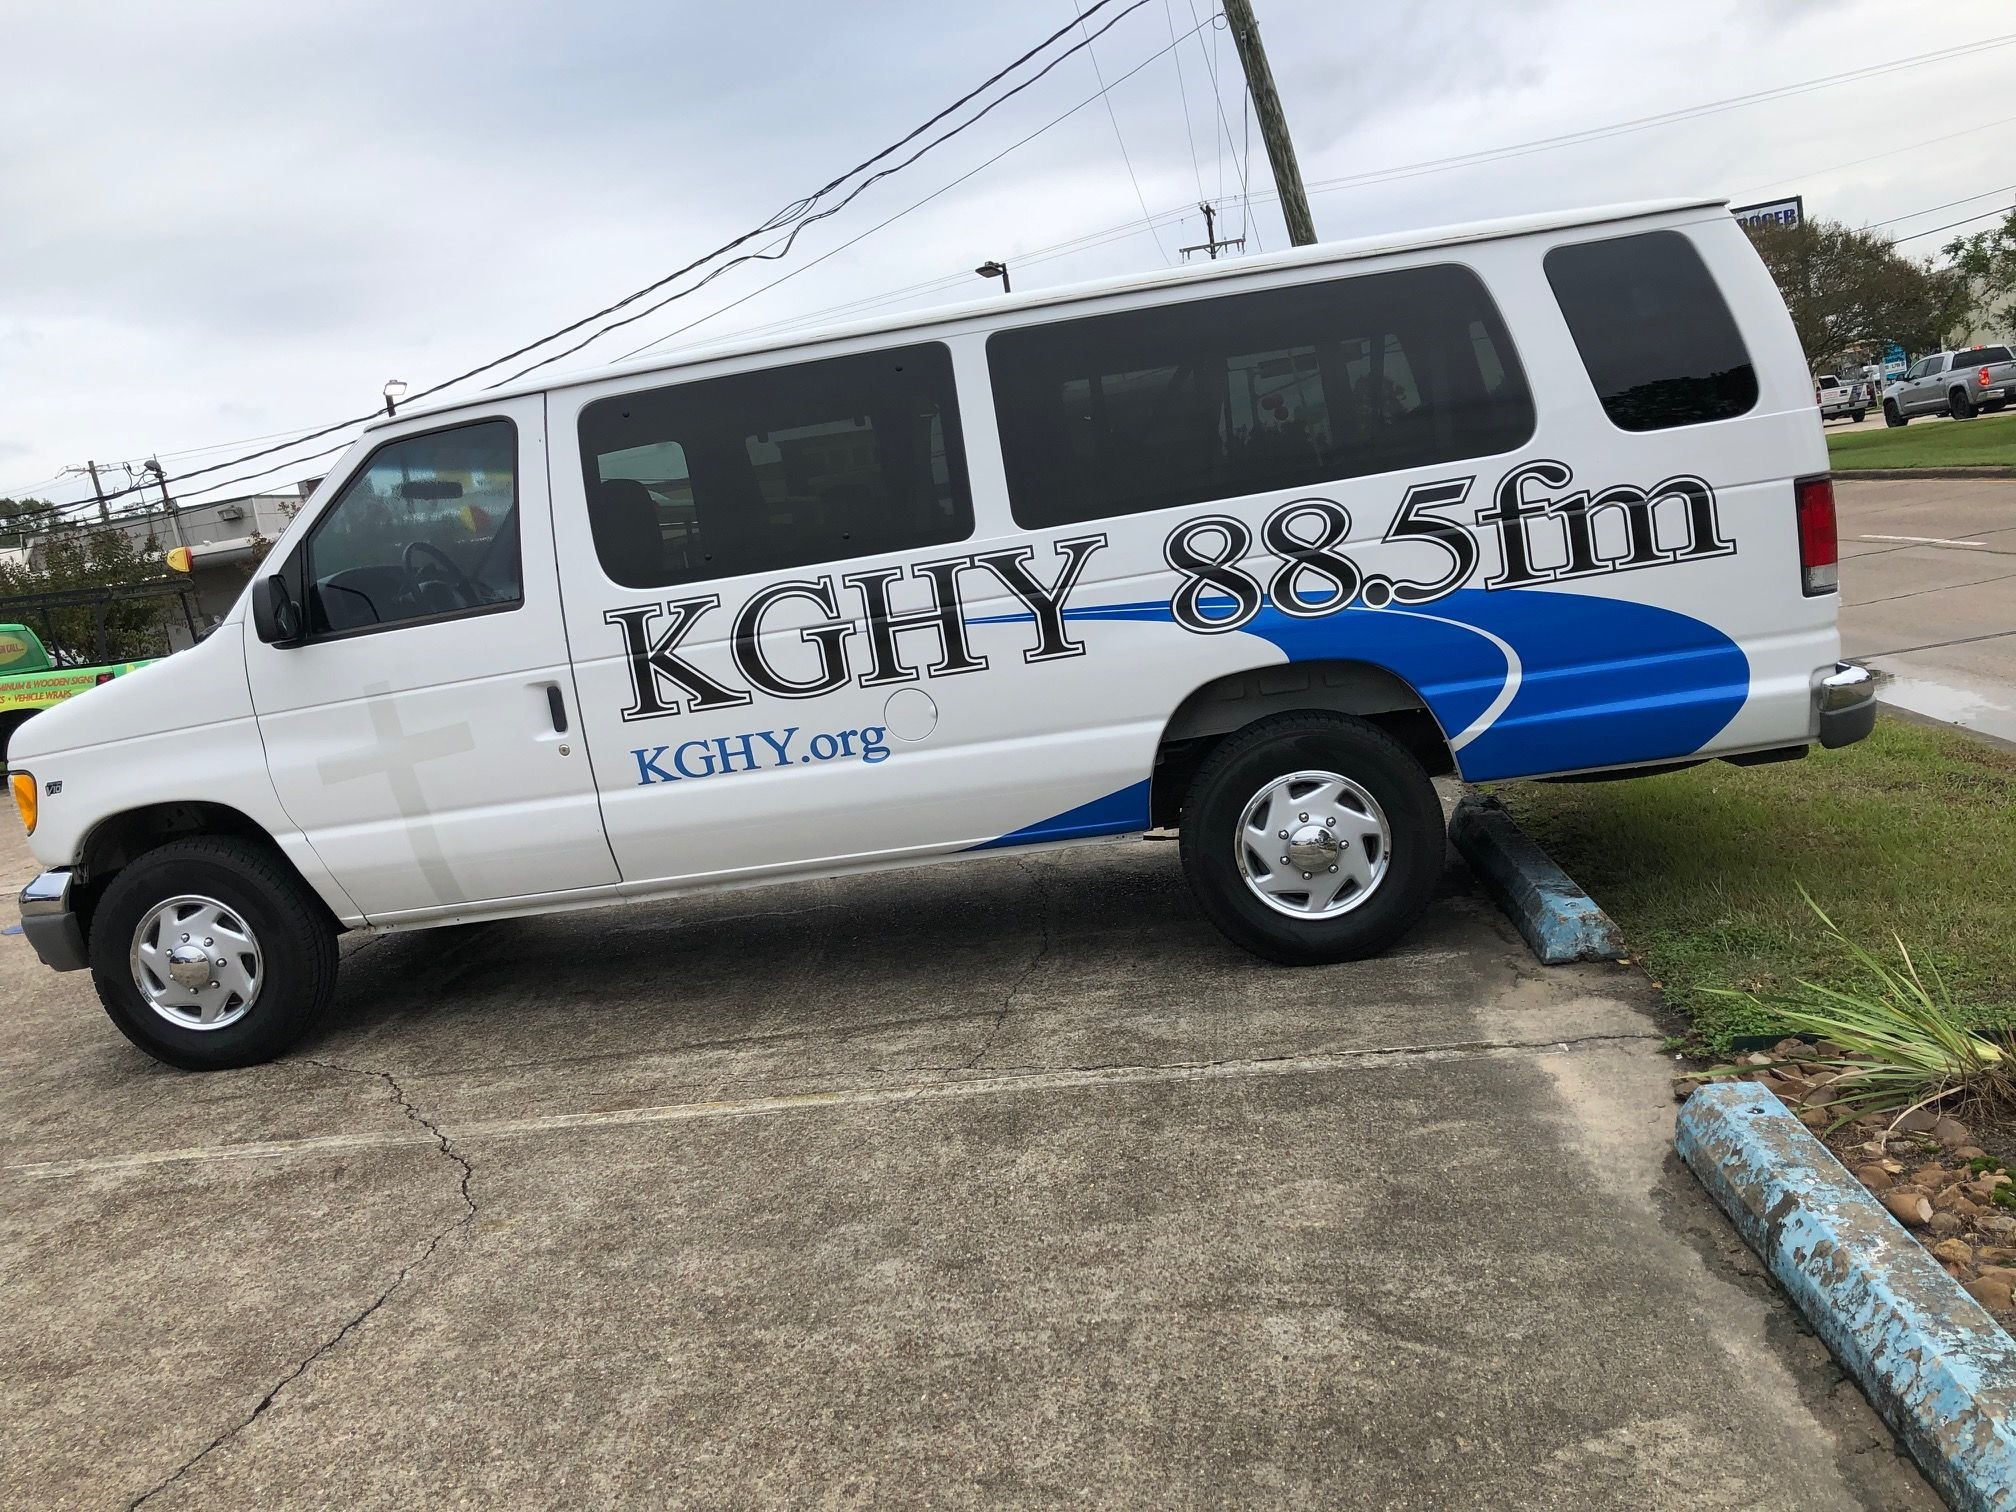 Full Vehicle Wraps | Corporate Event Signs | Advertising Agencies | Beaumont, Texas